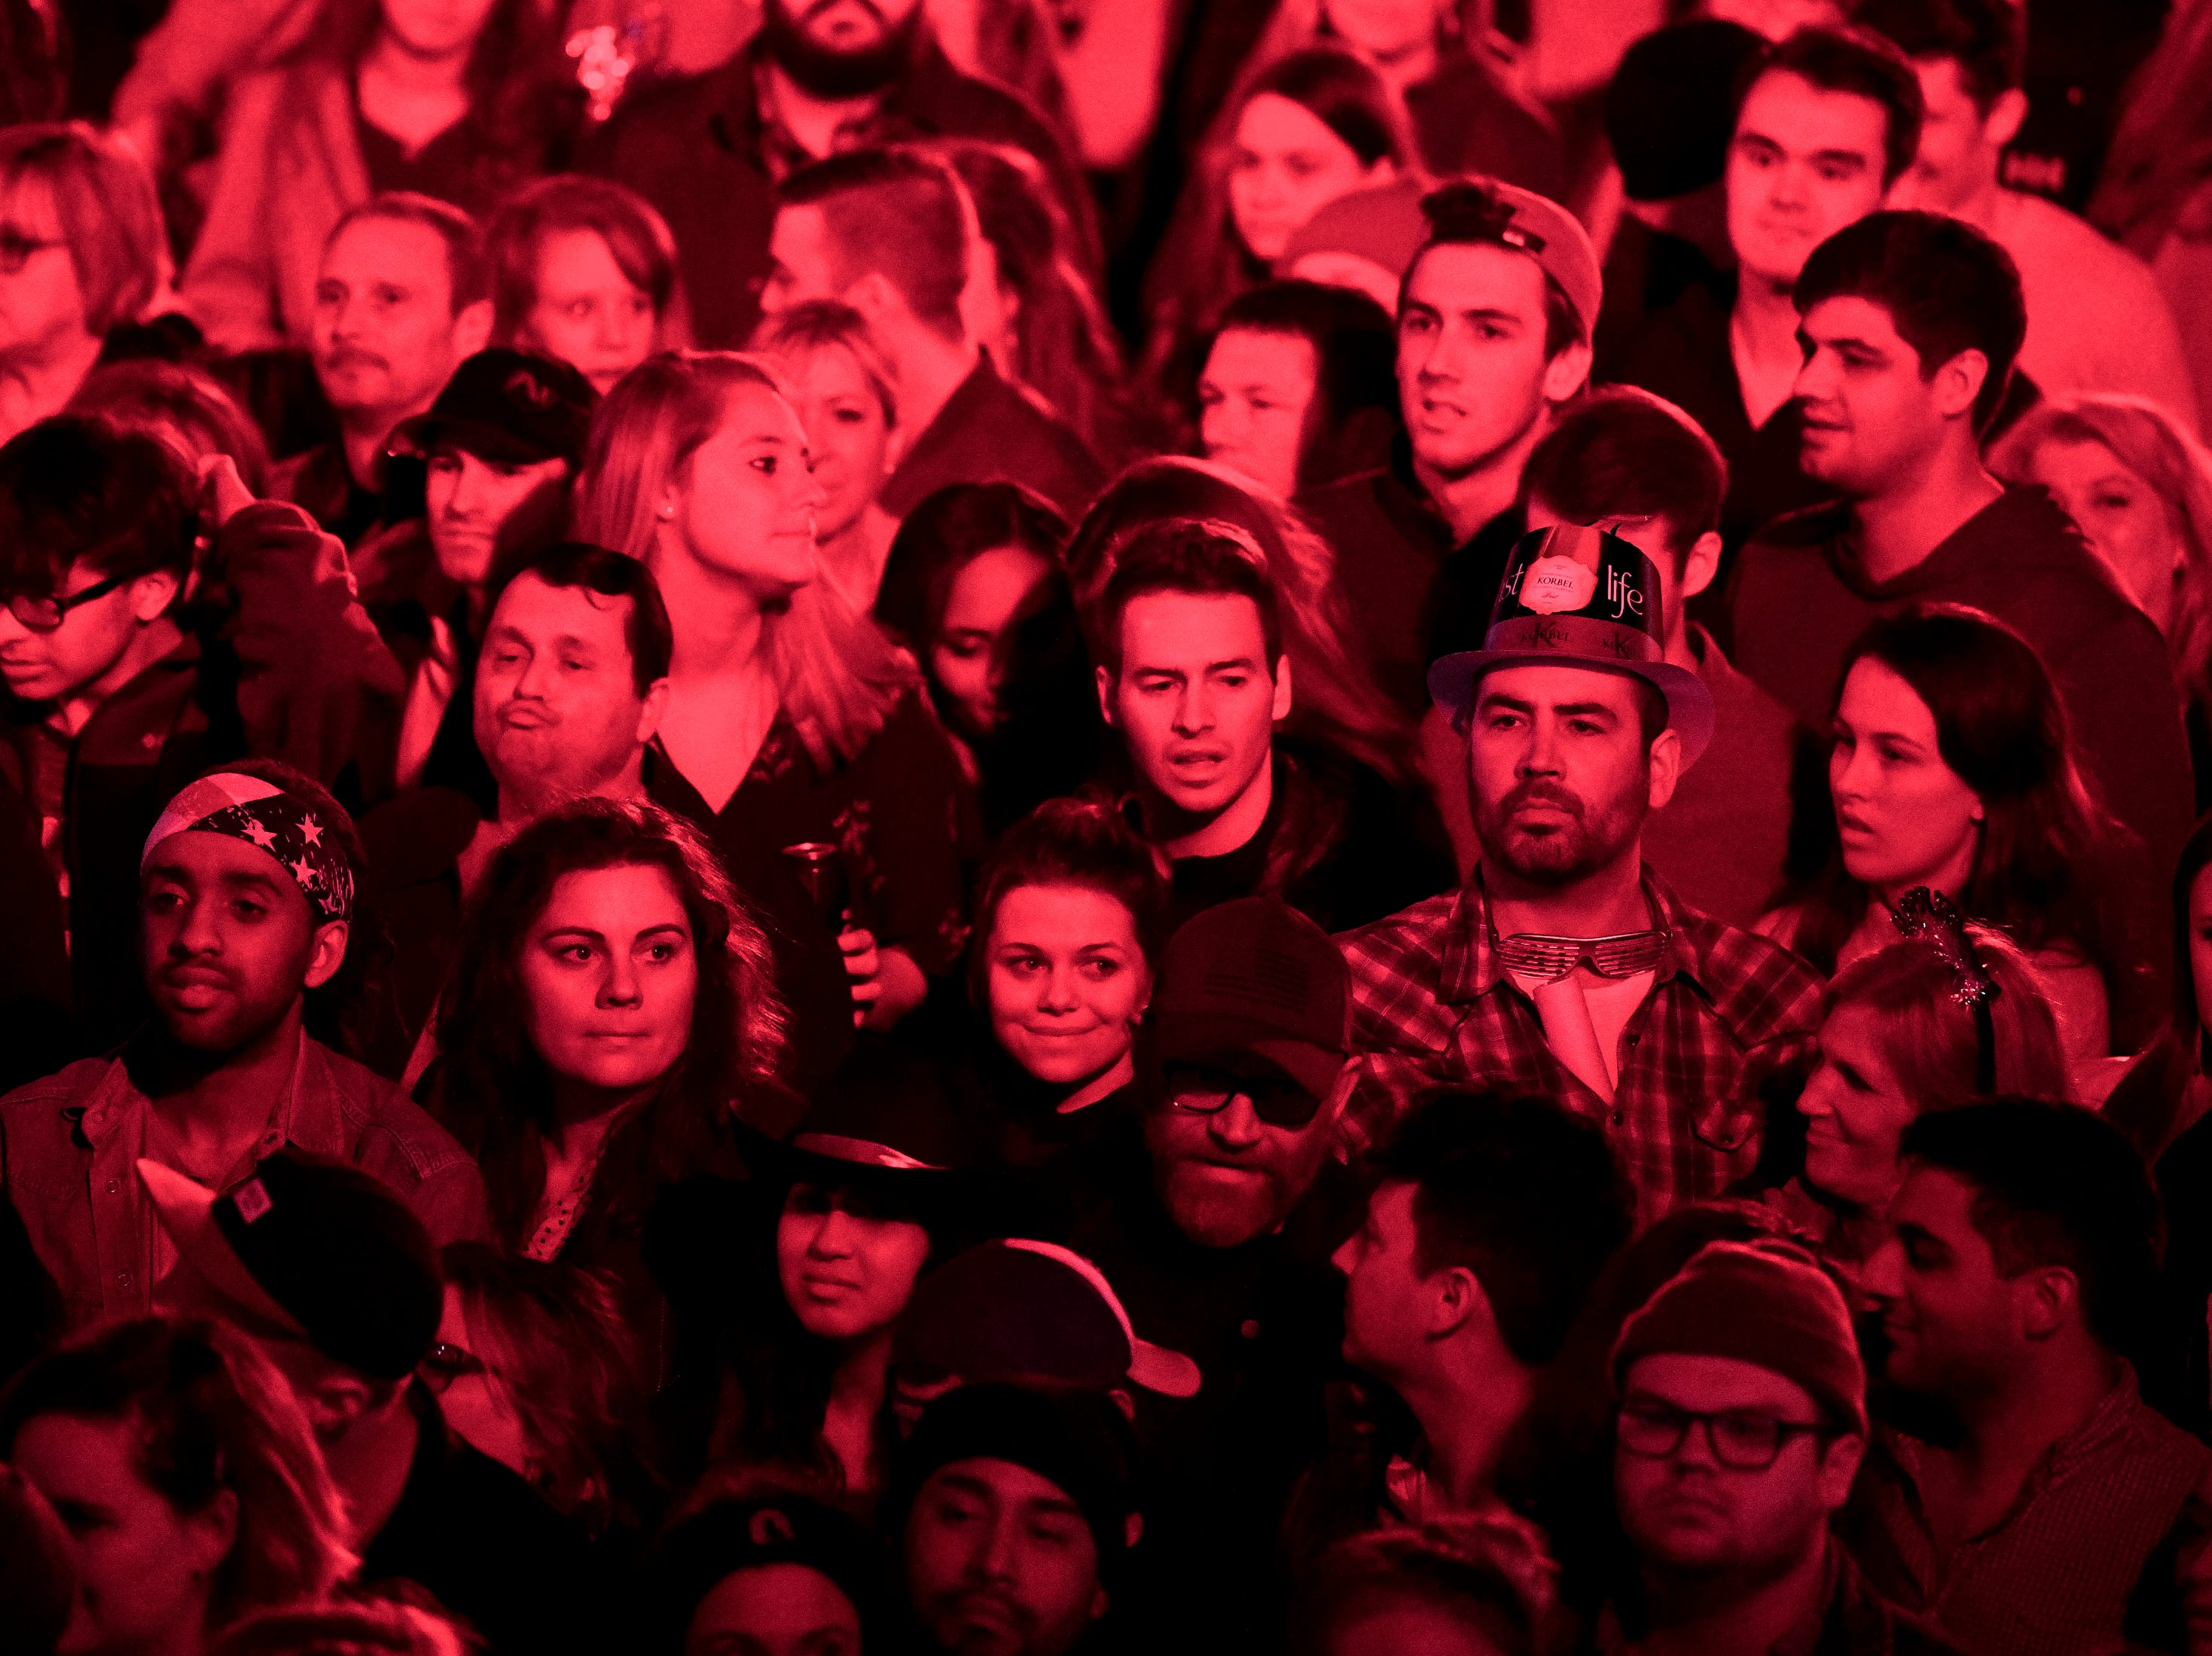 Fans watch as Judah and the Lion perform during the Jack Daniel's Music City Midnight: New Year's Eve event at Bicentennial Capitol Mall State Park in Nashville, Tenn., Monday, Dec. 31, 2018.